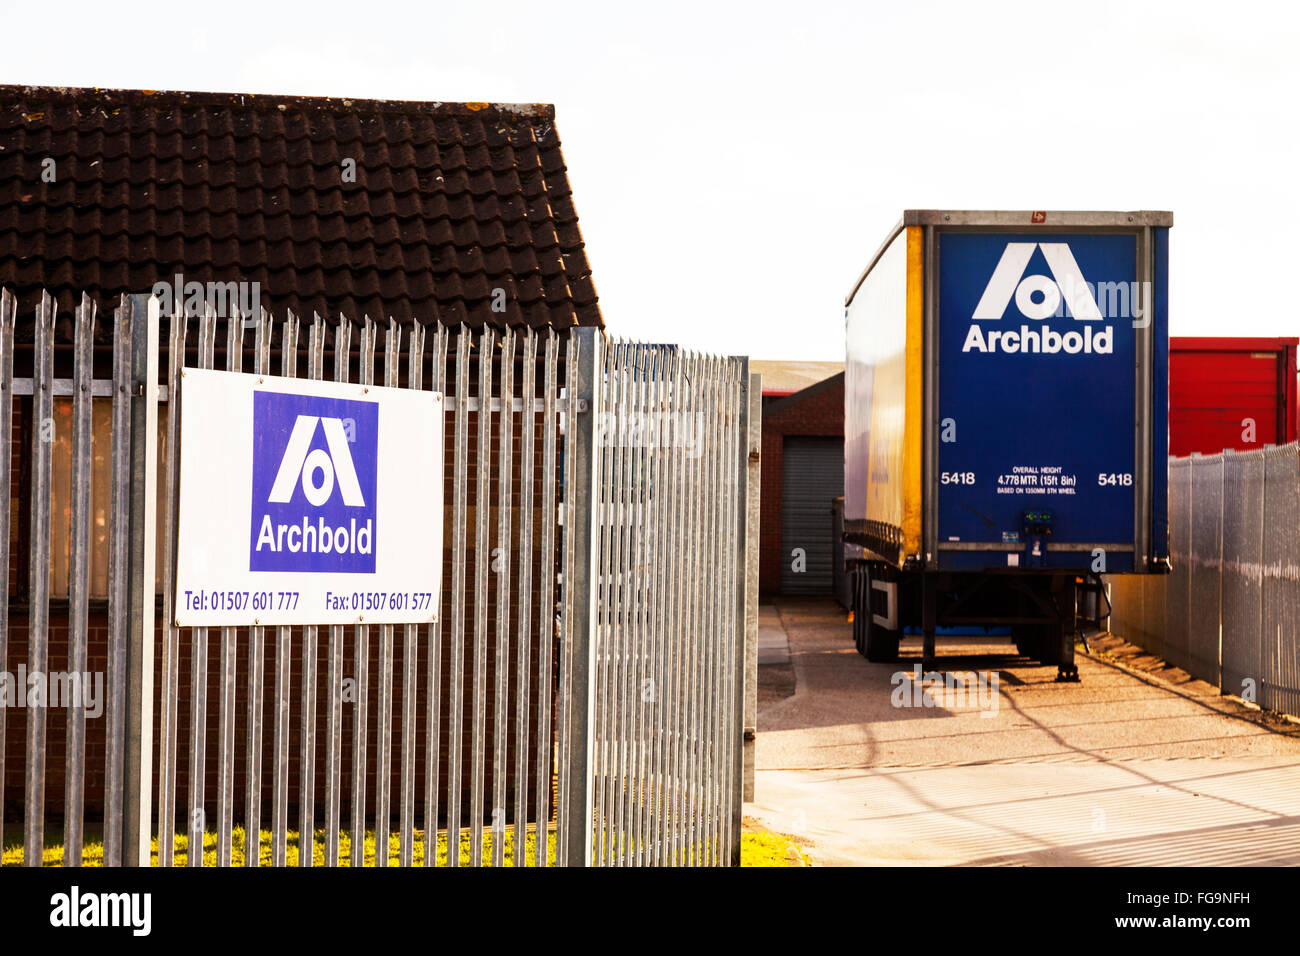 Archbold Logistics national distribution and warehousing service transport industrial estate Louth Lincolnshire - Stock Image